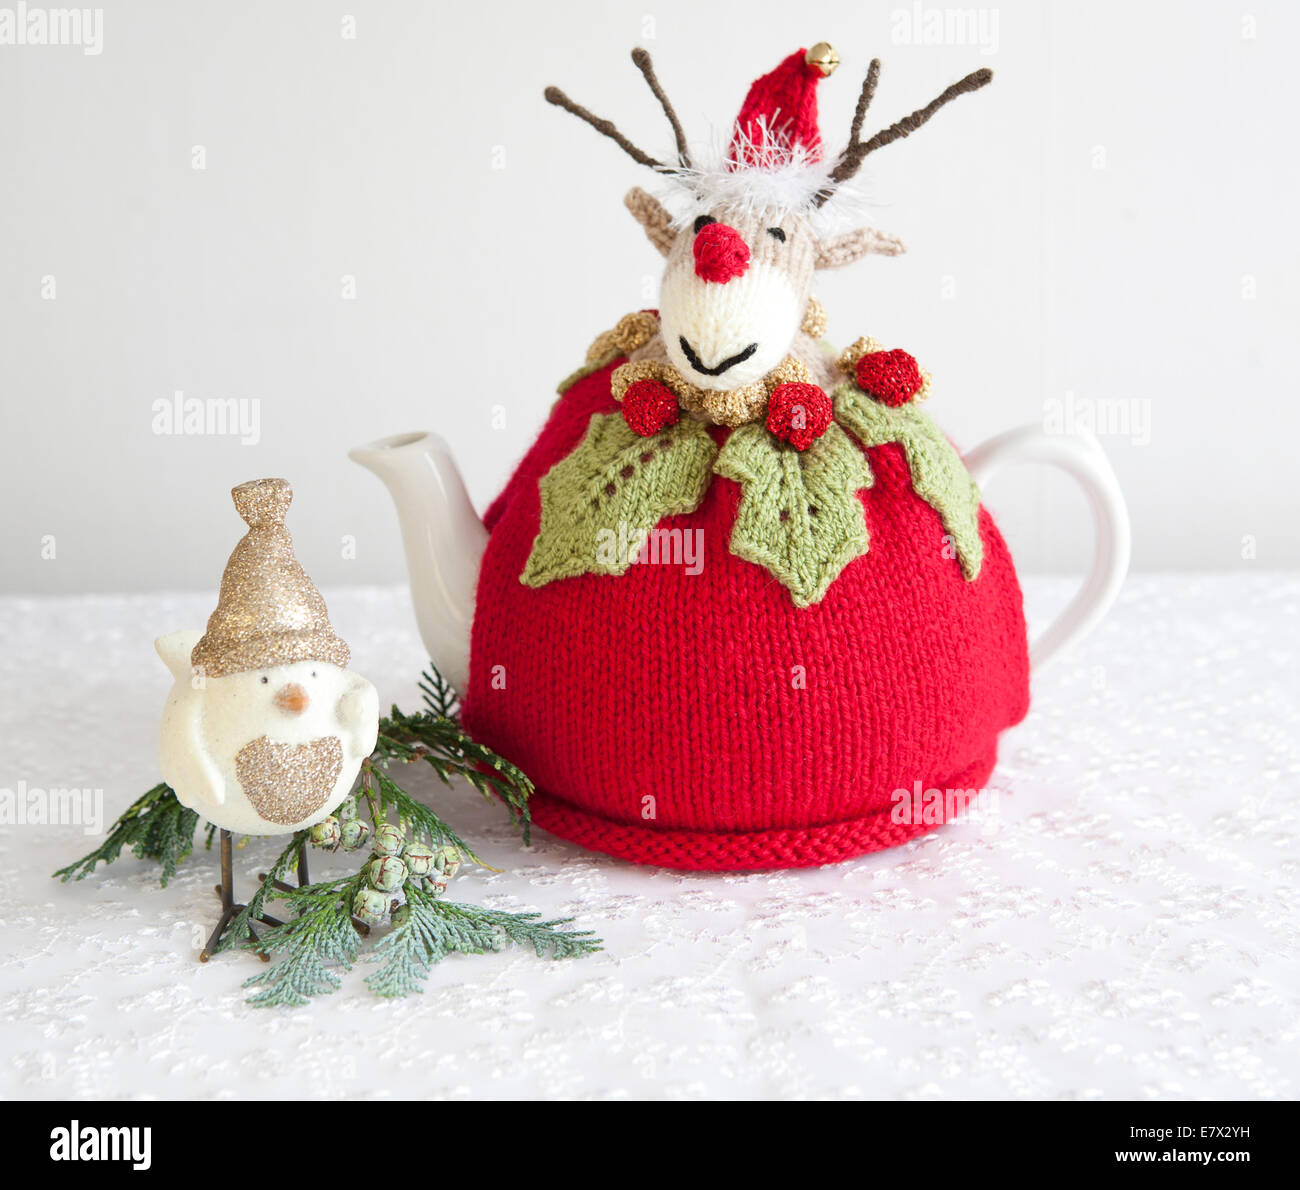 rudolph reindeer stockfotos rudolph reindeer bilder alamy. Black Bedroom Furniture Sets. Home Design Ideas